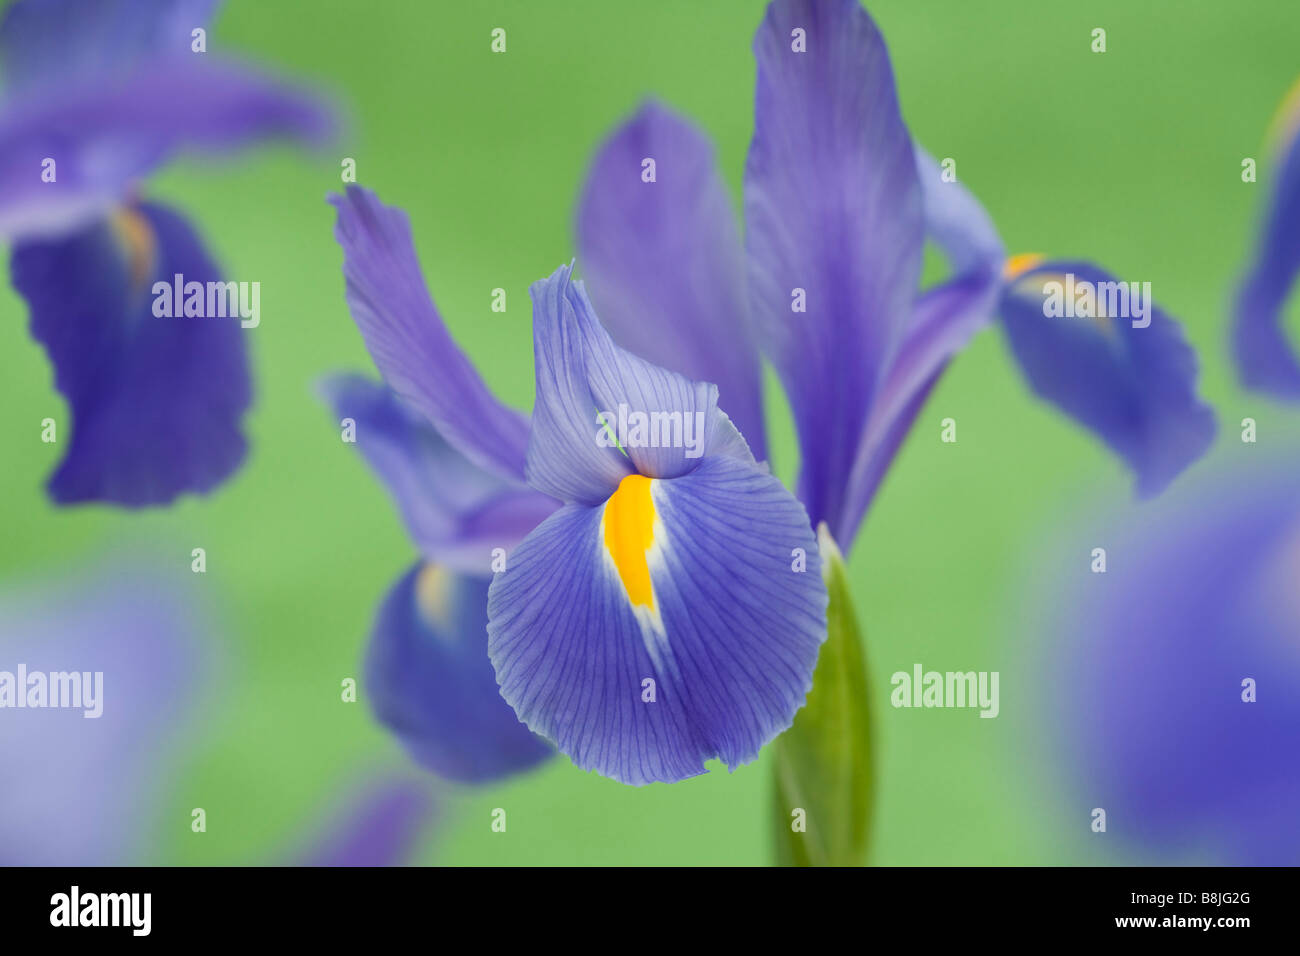 July Blue violet Iris flower Iridaceae flowers close up on a plain green background - Stock Image